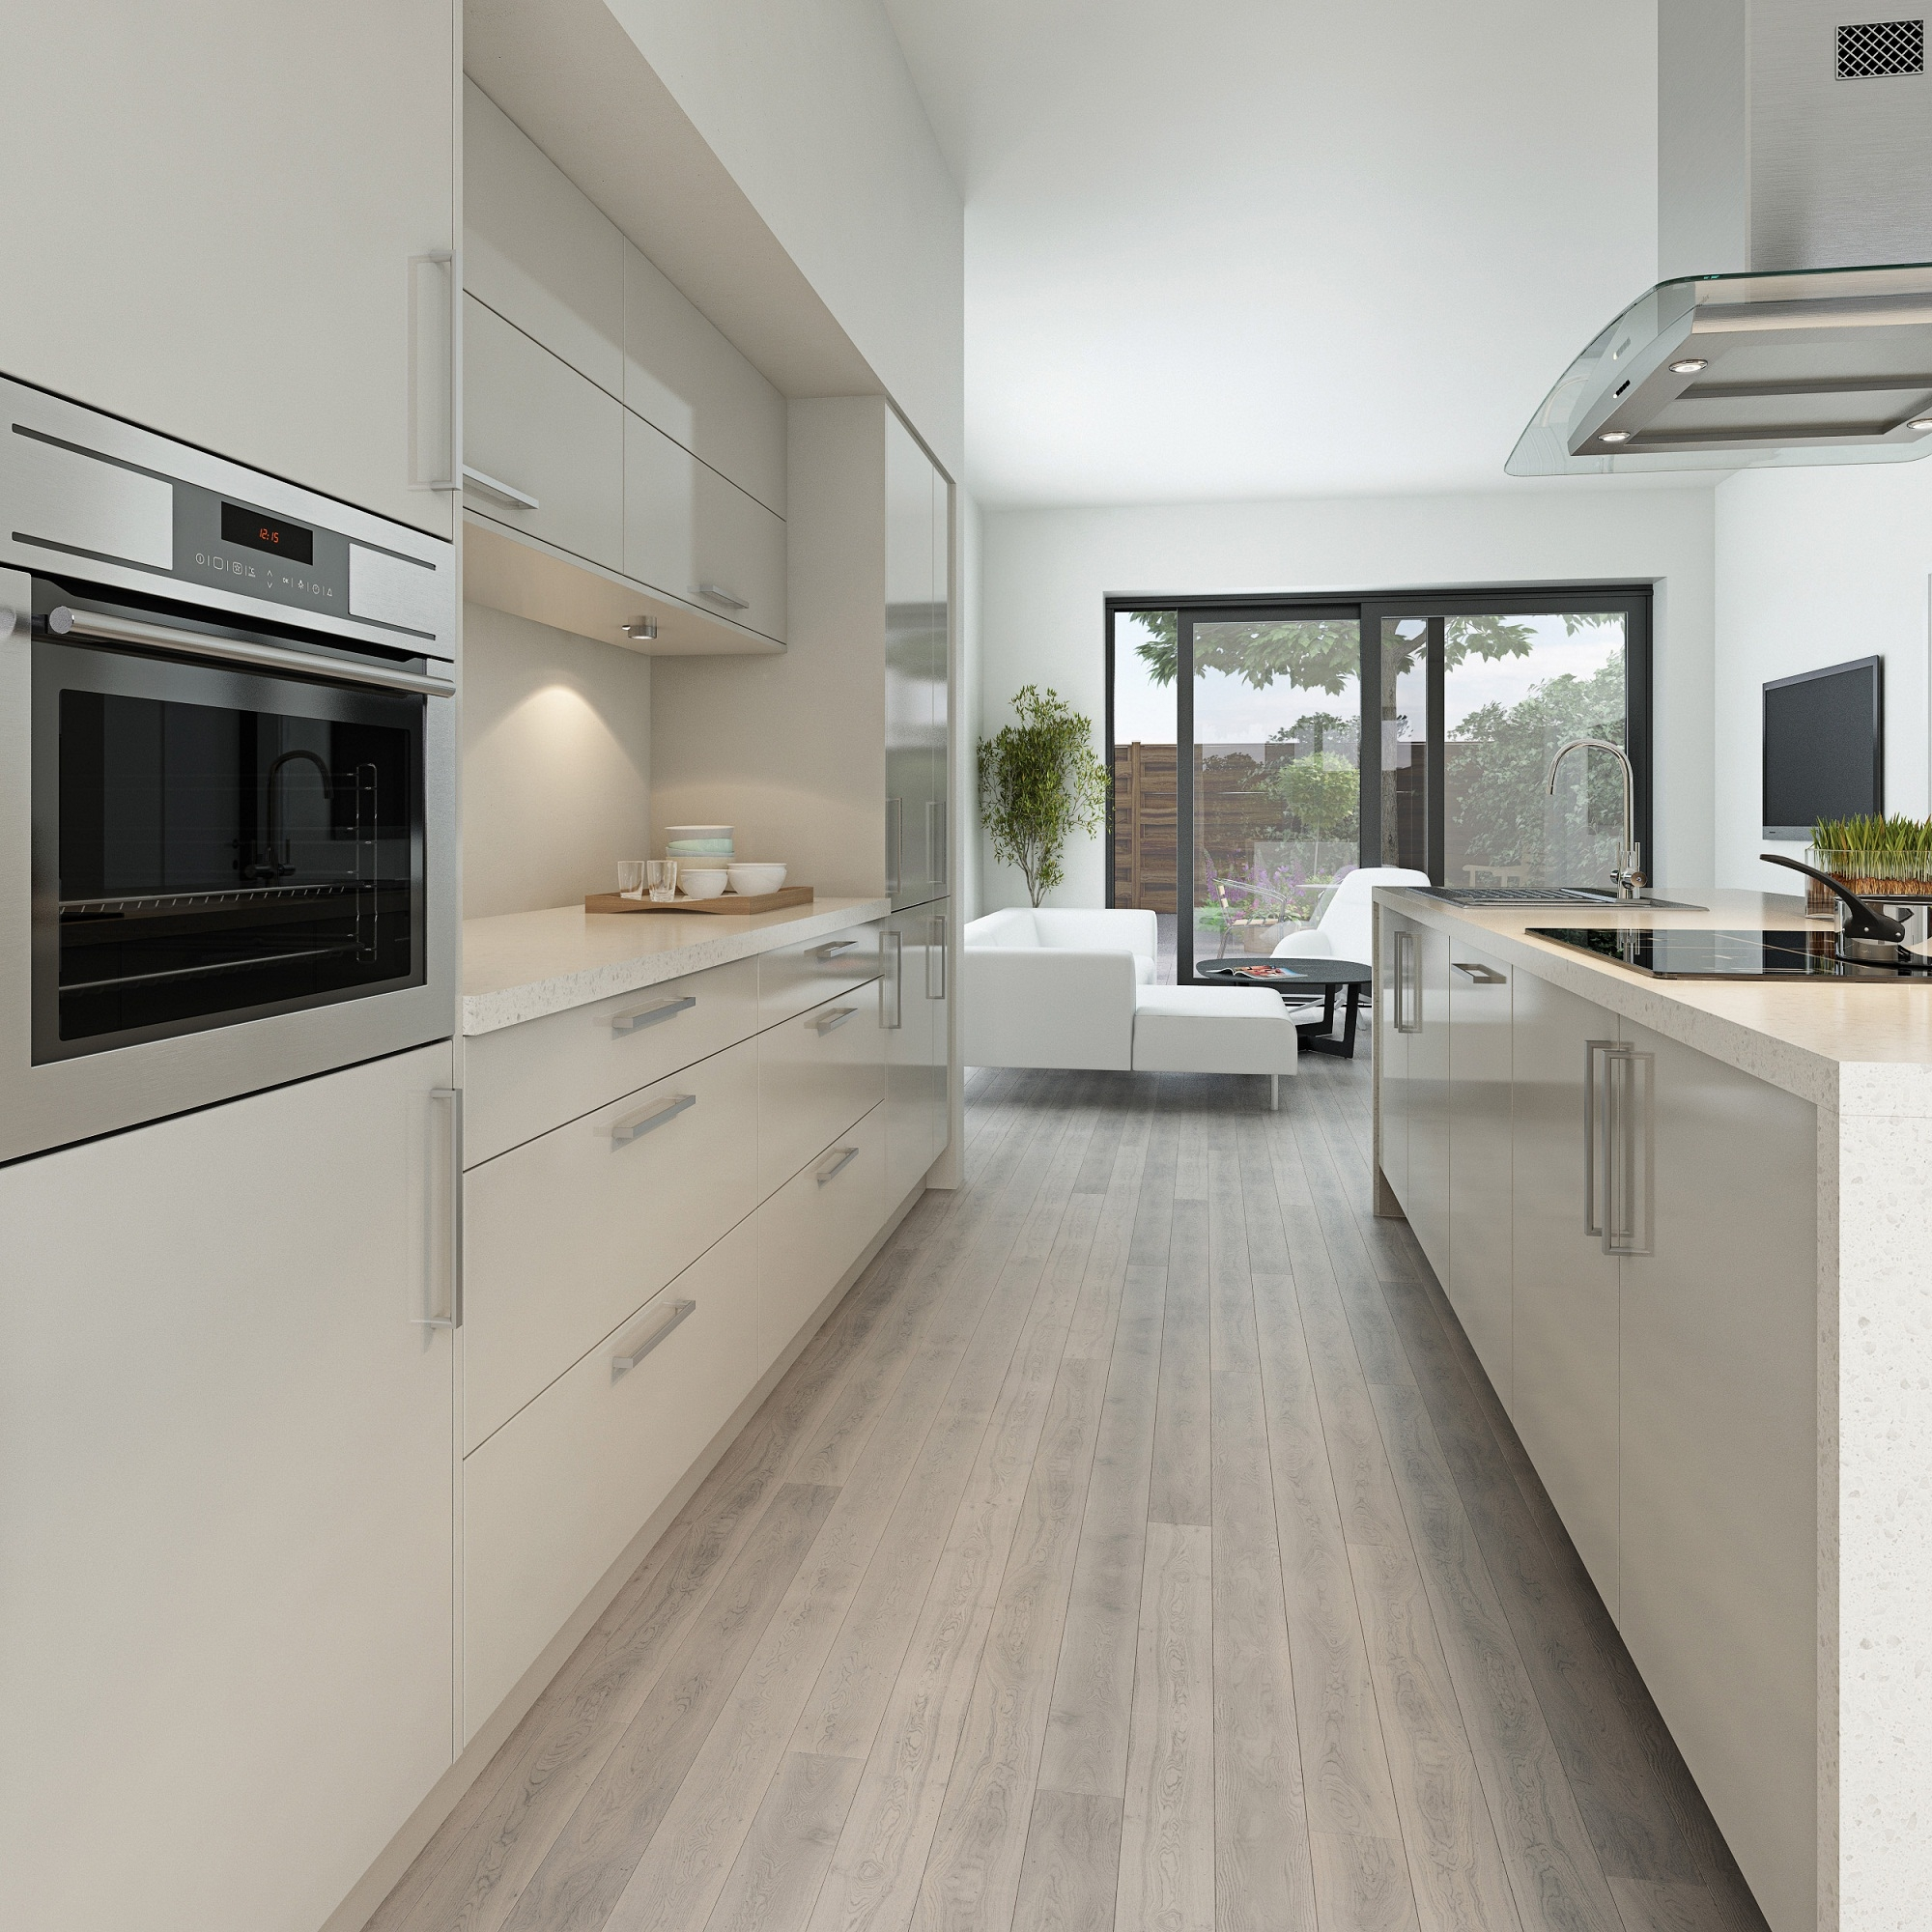 Modern Grey Gloss Kitchen Cabinetsmaida gloss light grey is one of our definitive modern kitchens